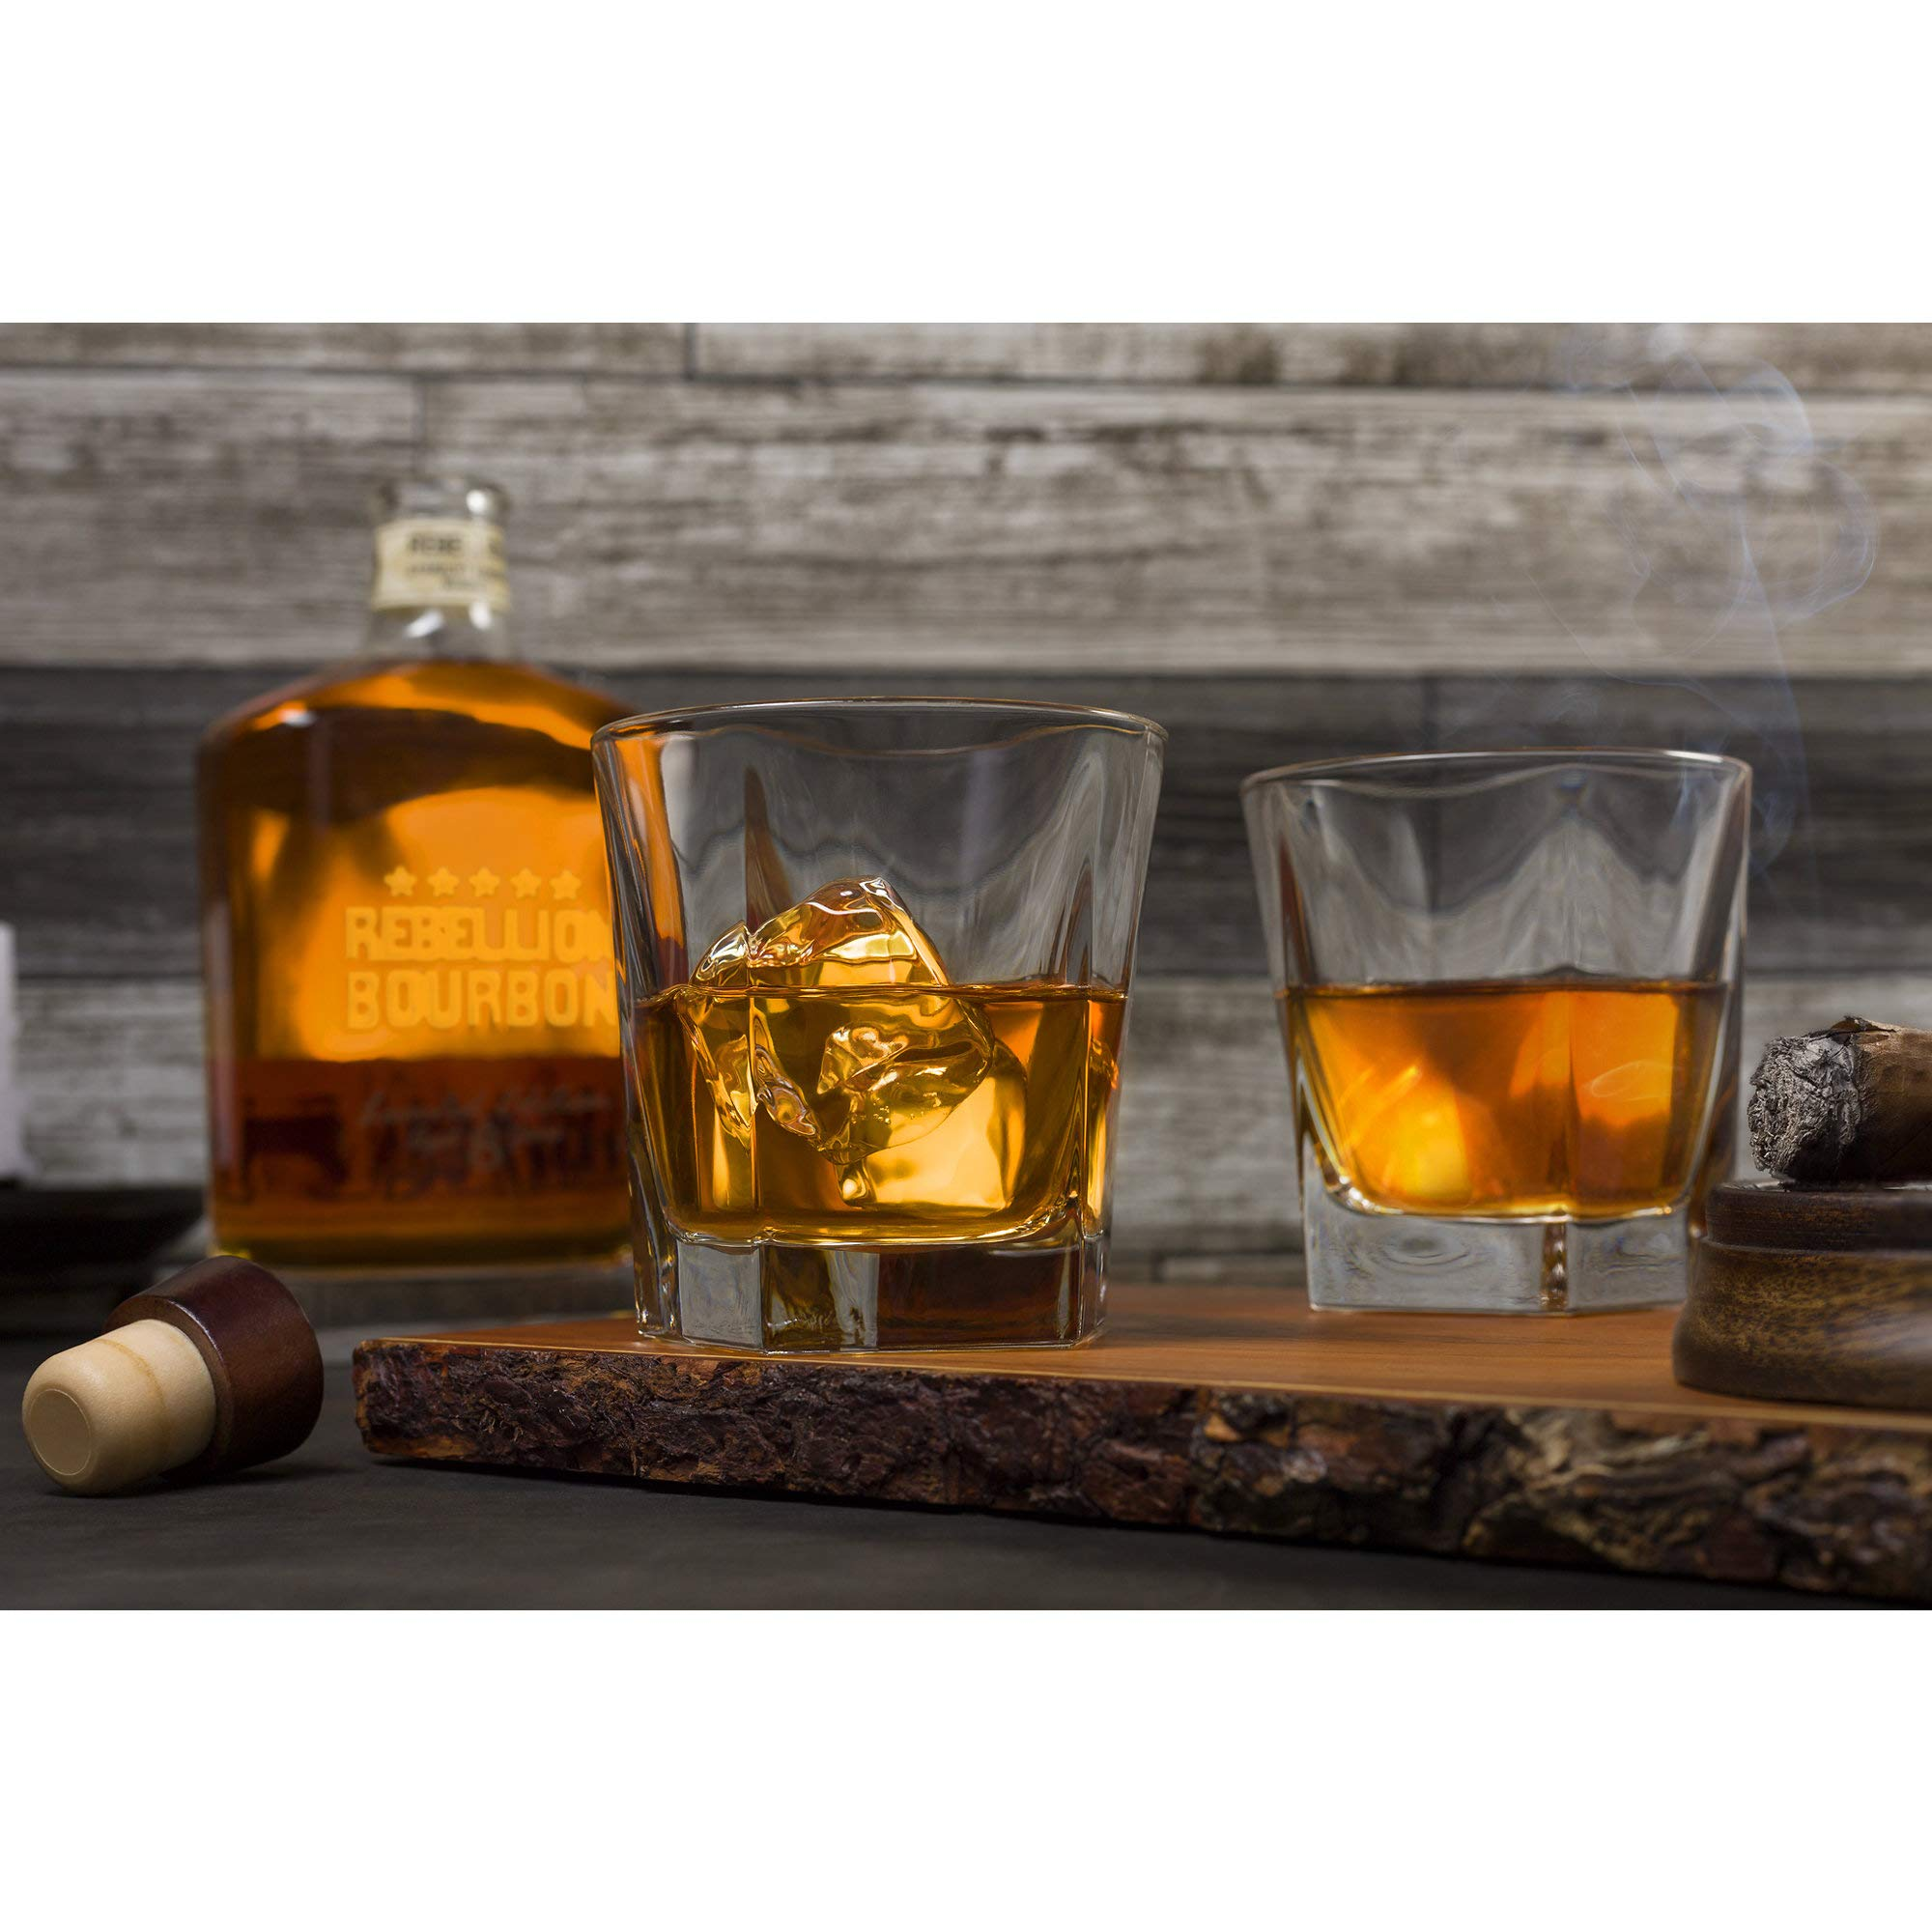 Whiskey Glasses, Set Of 2 – By Liquor Sip. Elegant Design- Large 12 oz Lead-free Tumblers- best glass cups for scotch or bourbon -10 Bonus Refreshing Cocktail Recipes enclosed in a stylish gift box by Liquor Sip (Image #2)